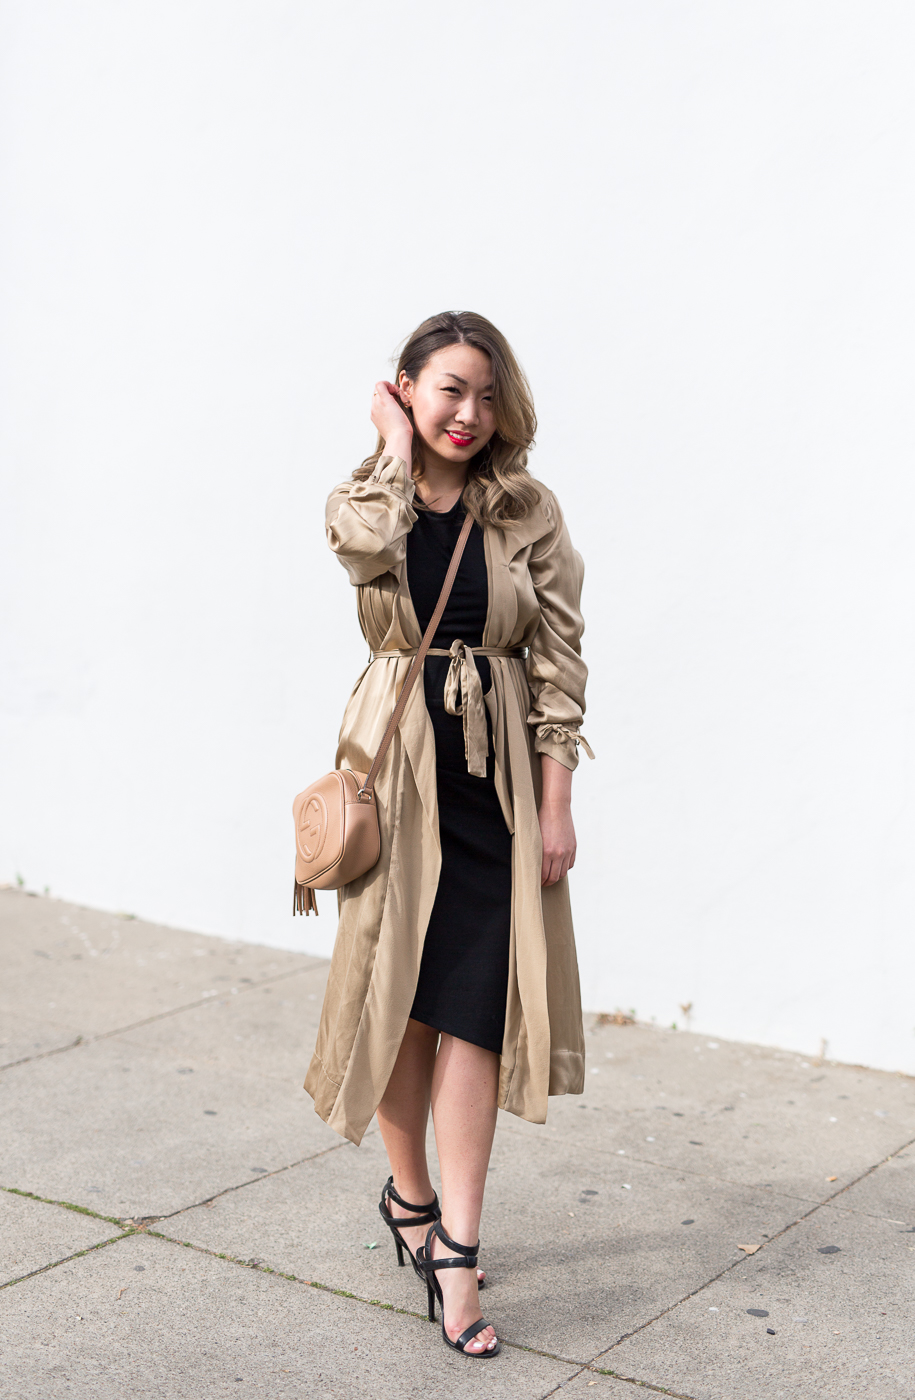 Aritzia Le Fou Wilfred Mercier Jacket & The Group By Babaton Notley Dress | The Chic Diary